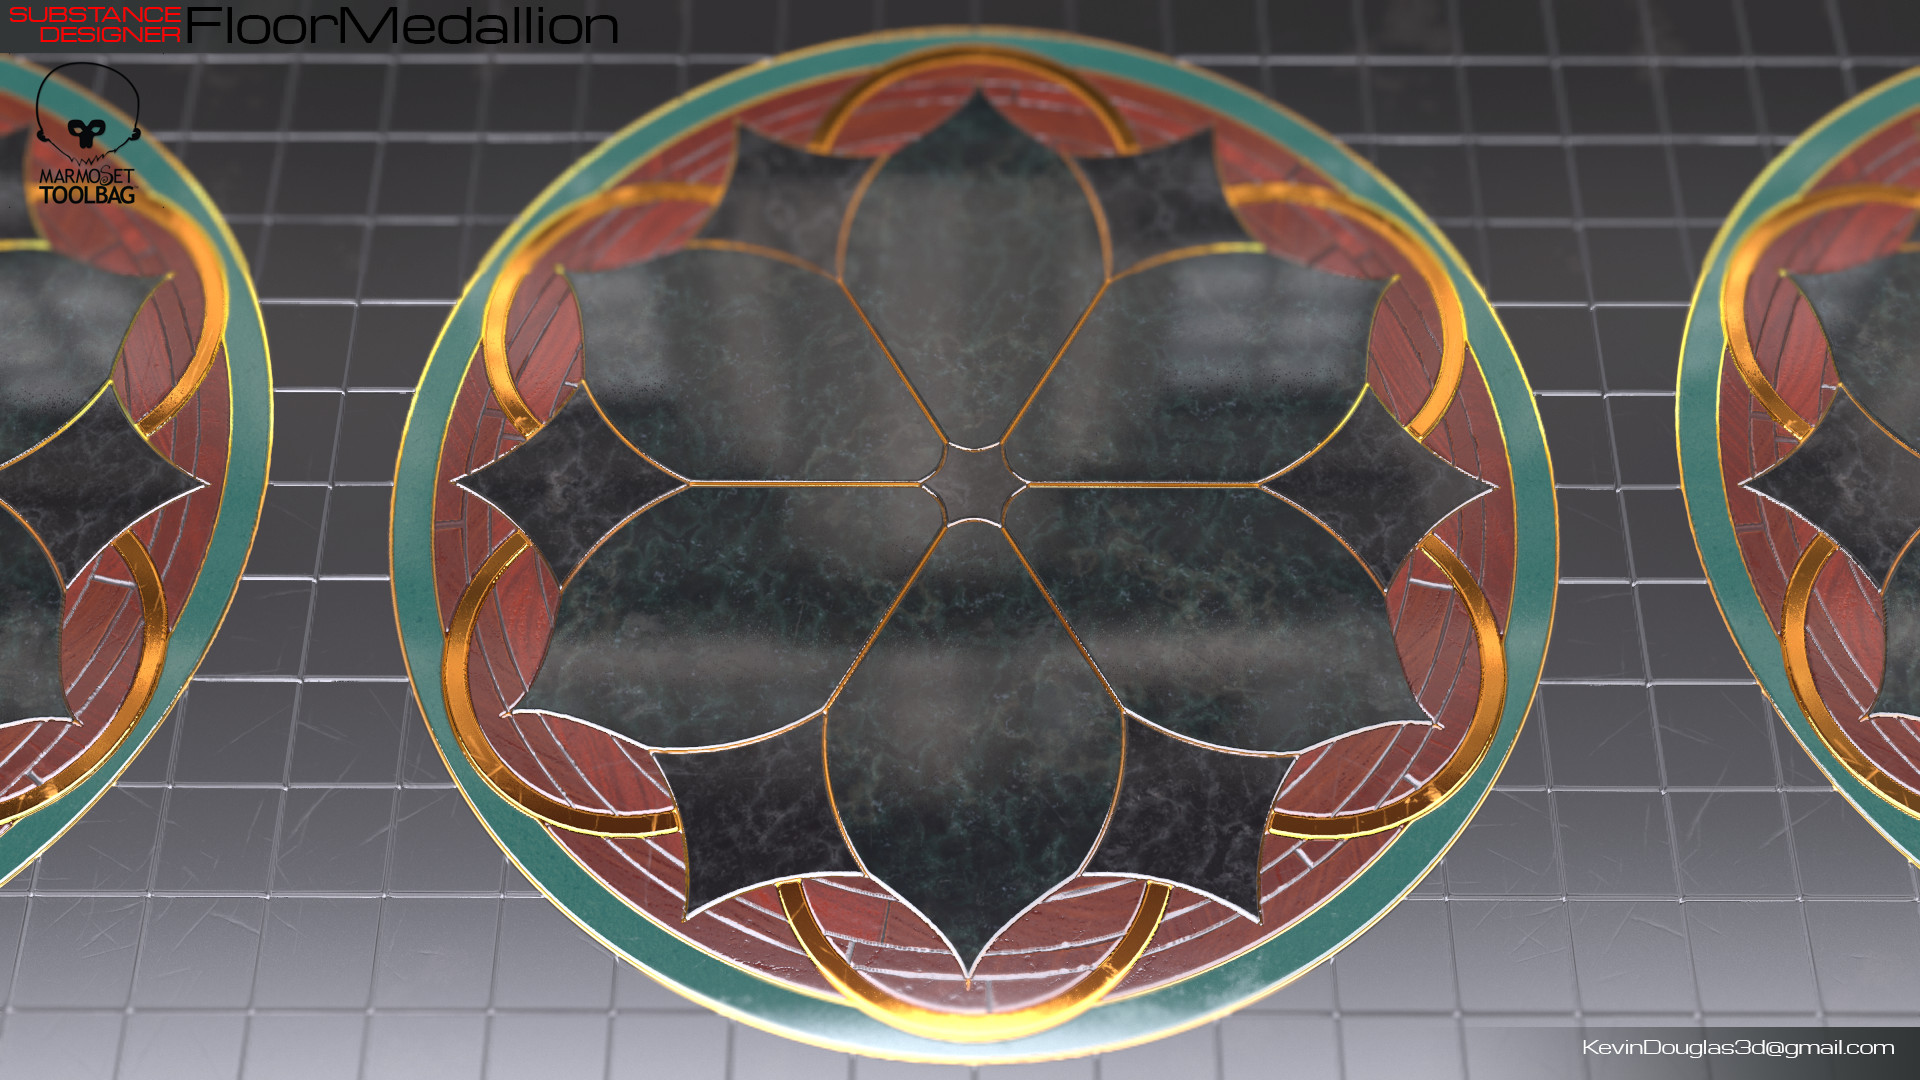 Kevin douglas floor medallion beauty wharehouse